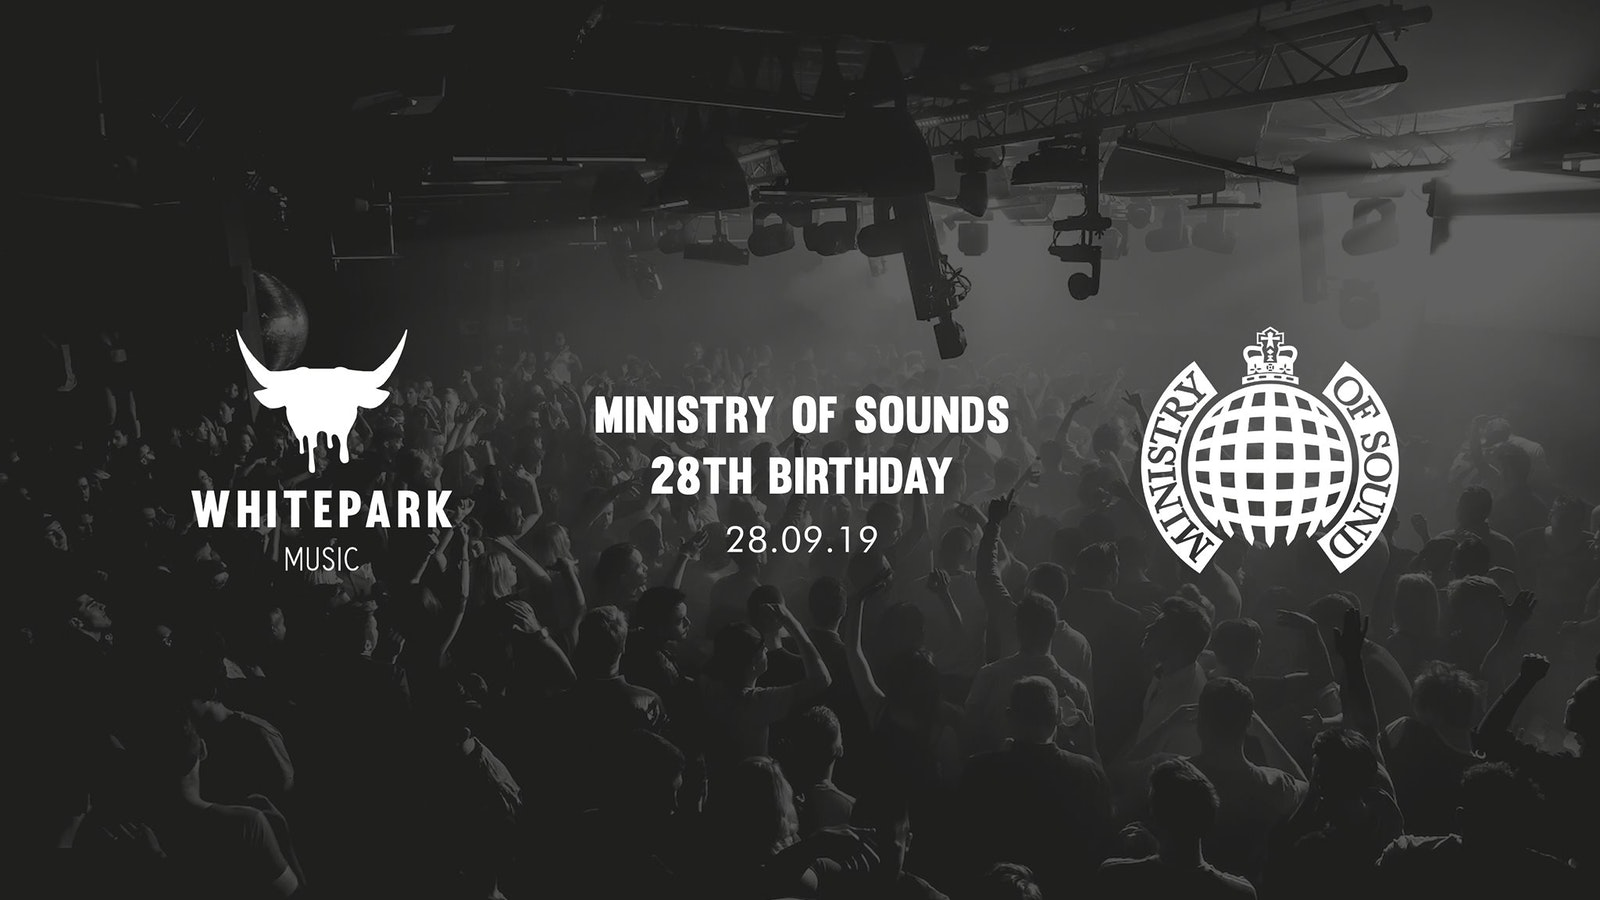 Whitepark Music at Ministry of Sound's 28th Birthday